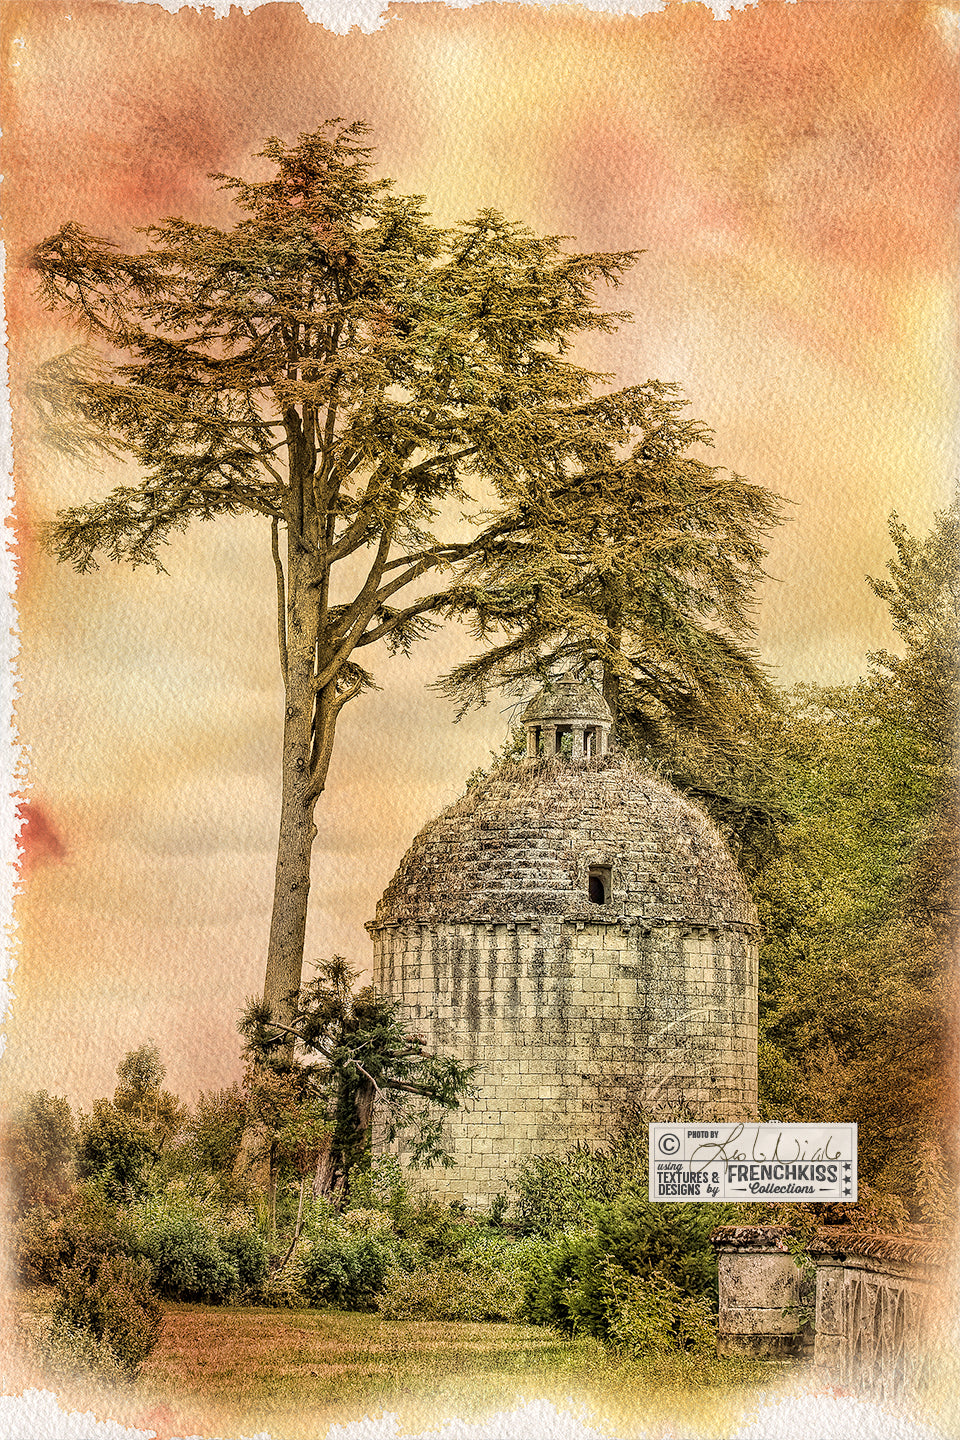 Photograph of an ancient building in France with a watercolor texture treatment. Photograph by Leslie Nicole, texture from the Autumn Rain collection.